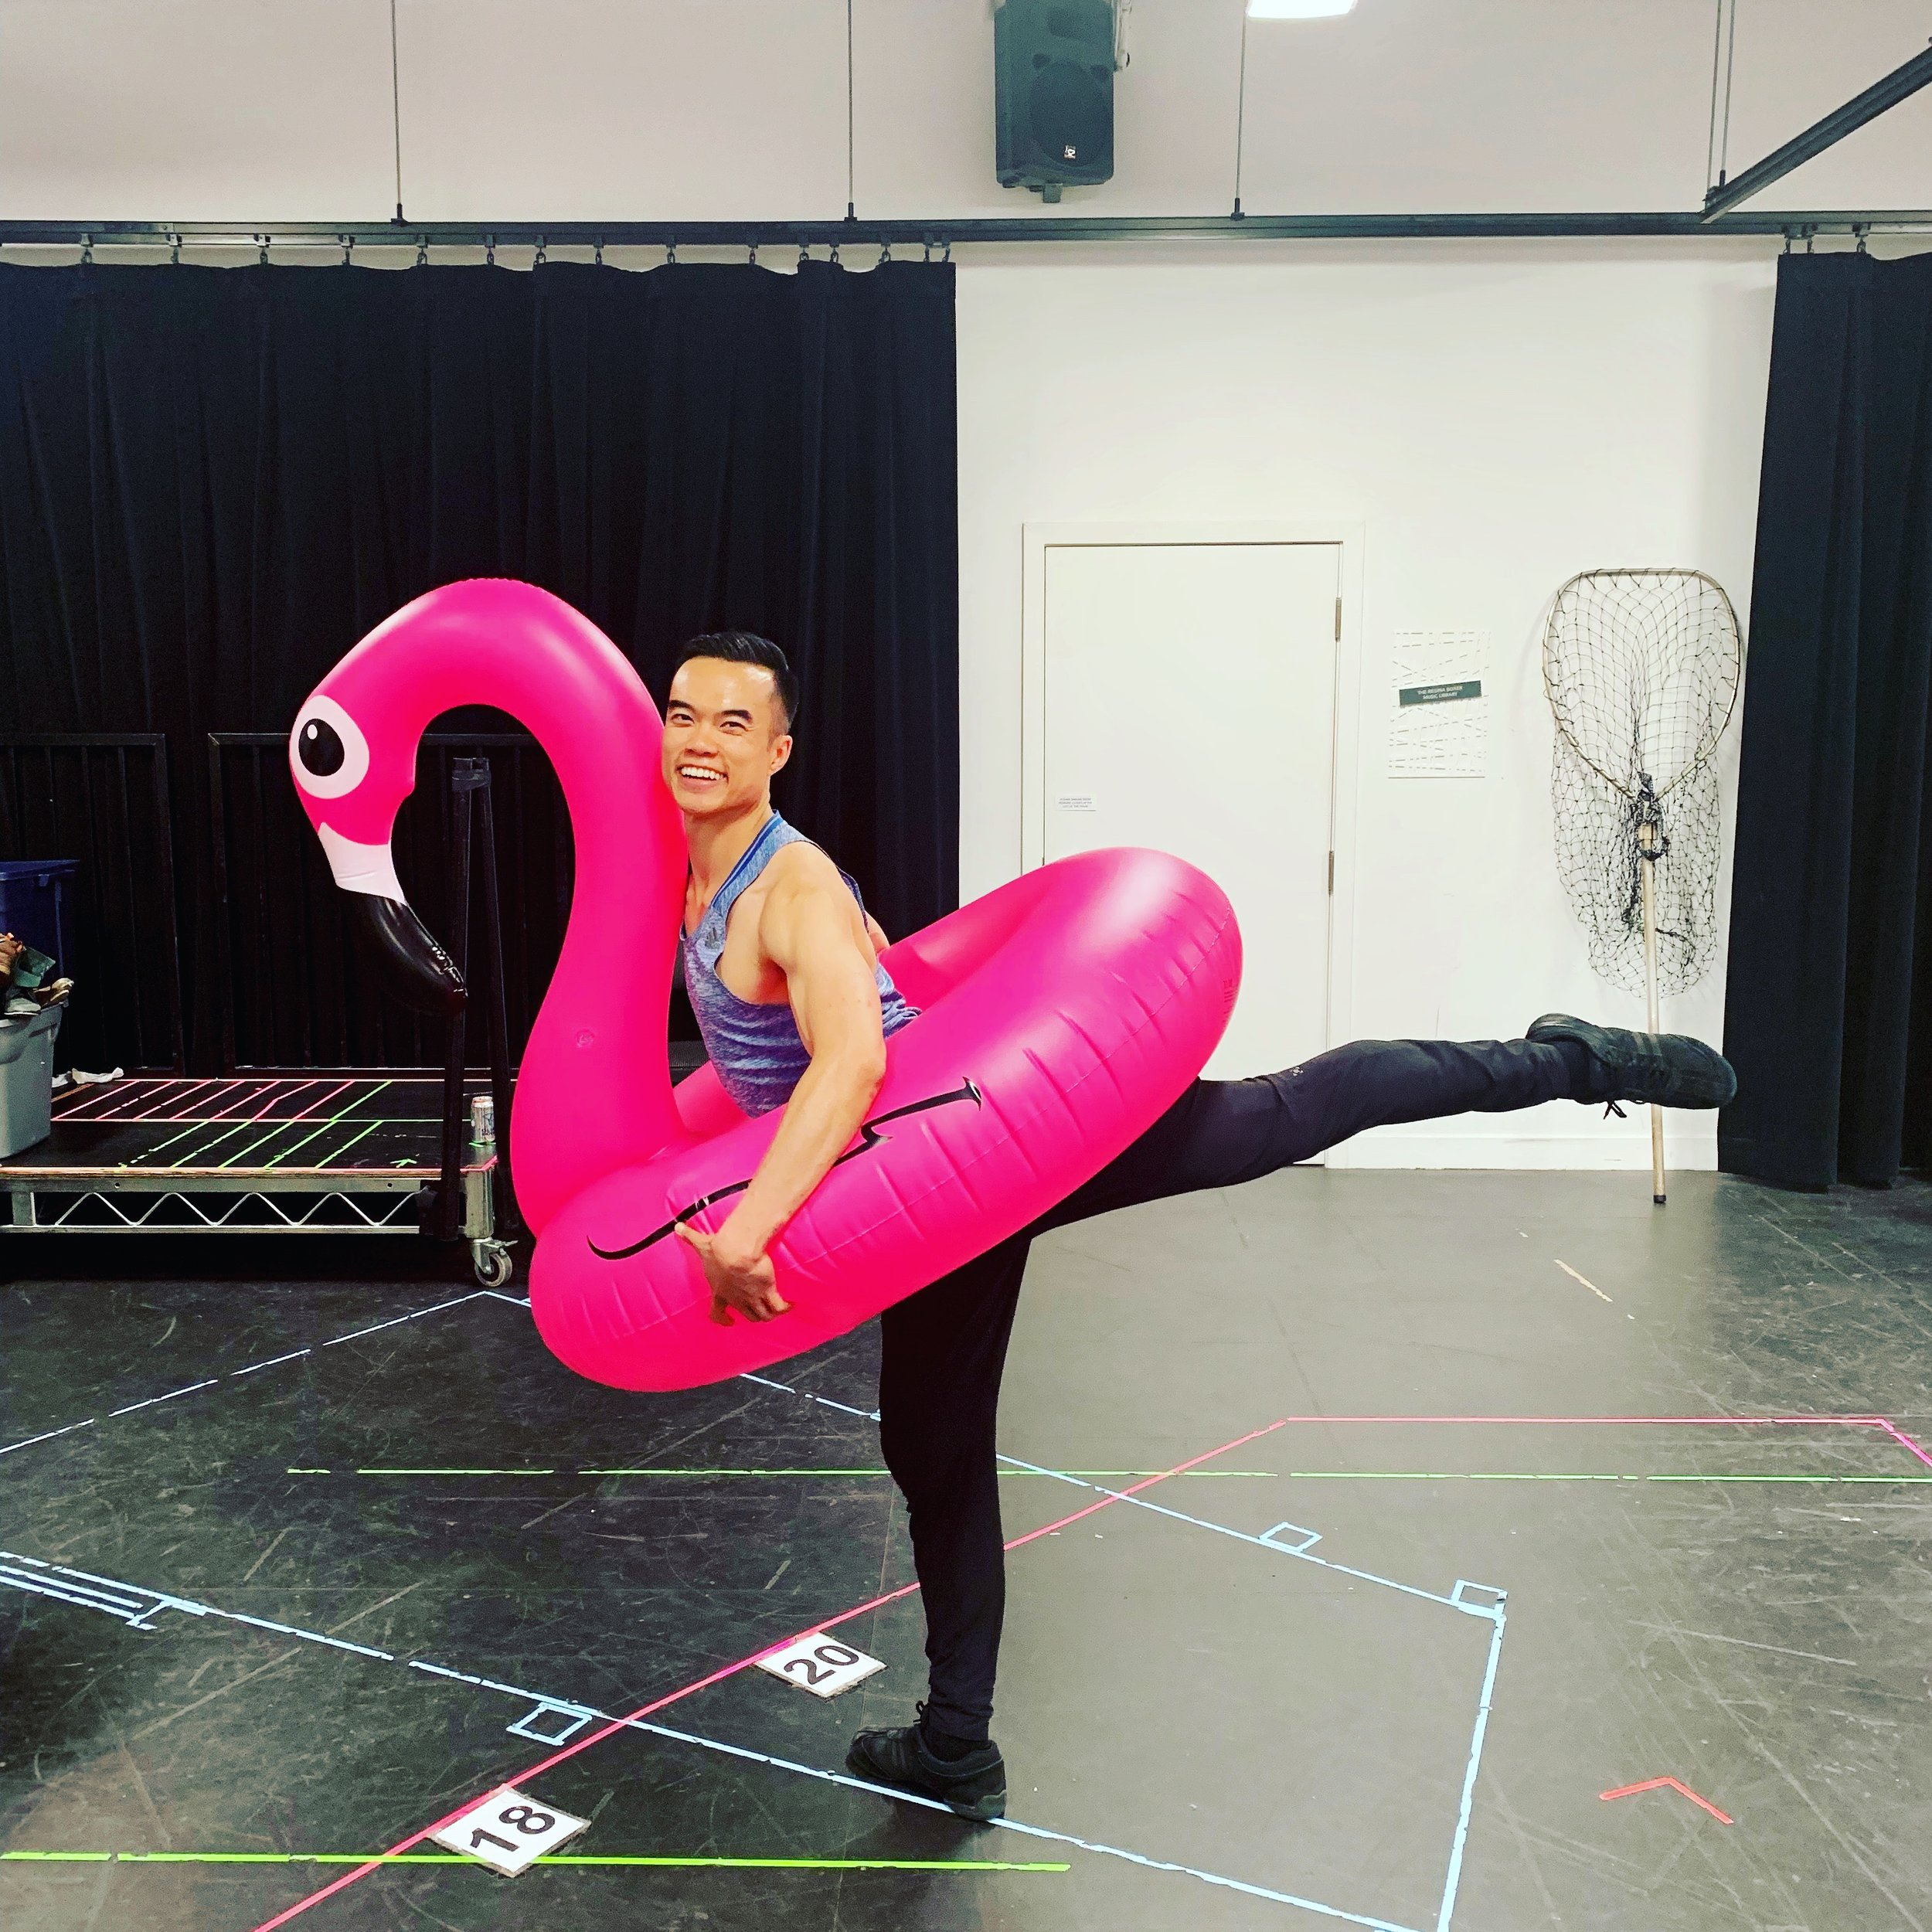 My dream to dance with a pink flamingo has come true!